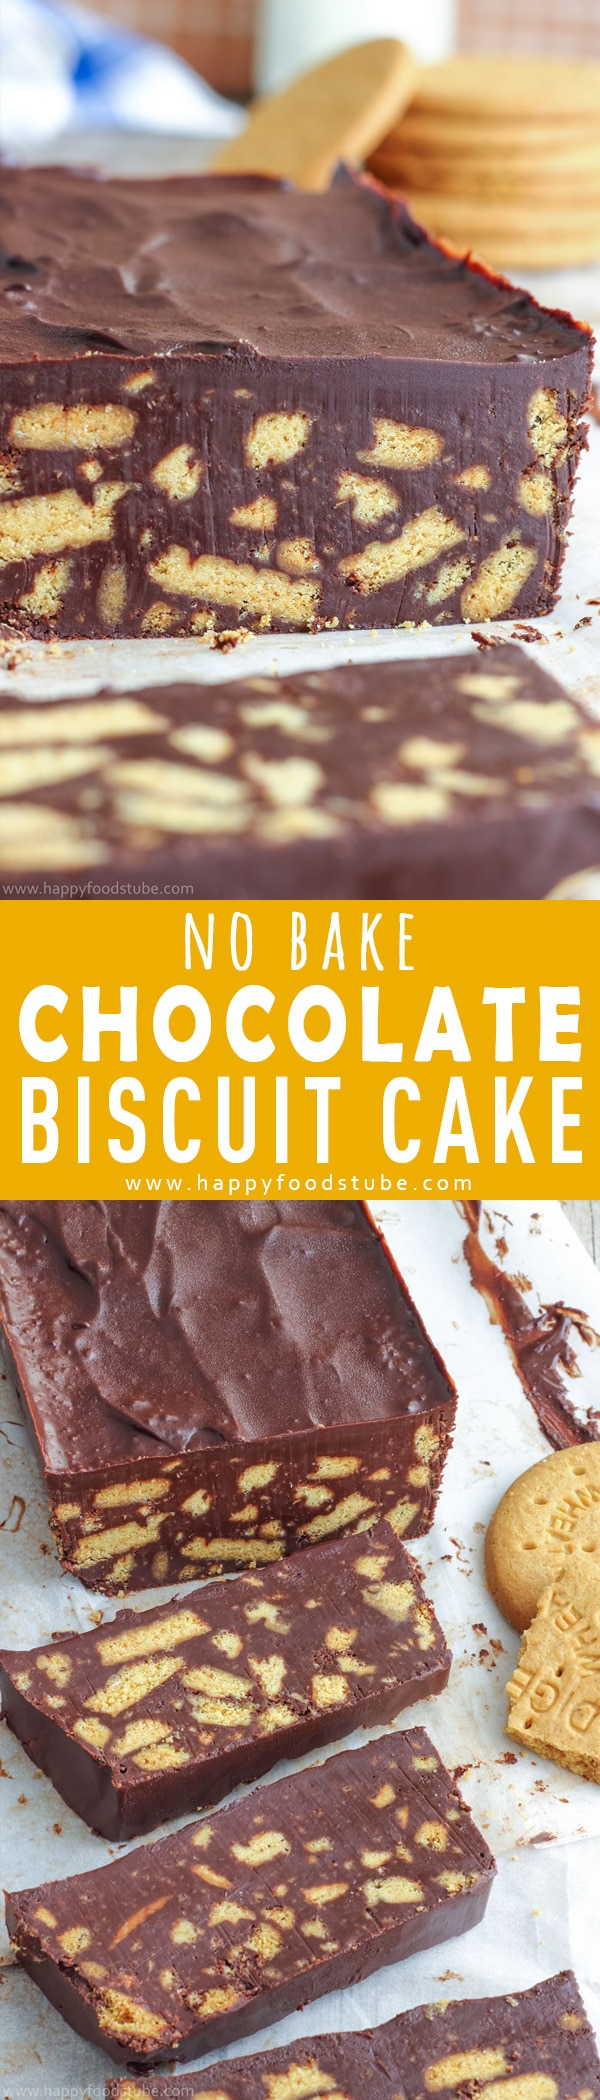 No bake chocolate biscuit cake also known as chocolate fridge cake is a must-try treat. Turn digestive biscuits & chocolate into this easy homemade dessert. Only 4-ingredients and ready in 10-minutes. How to make a cake from biscuits